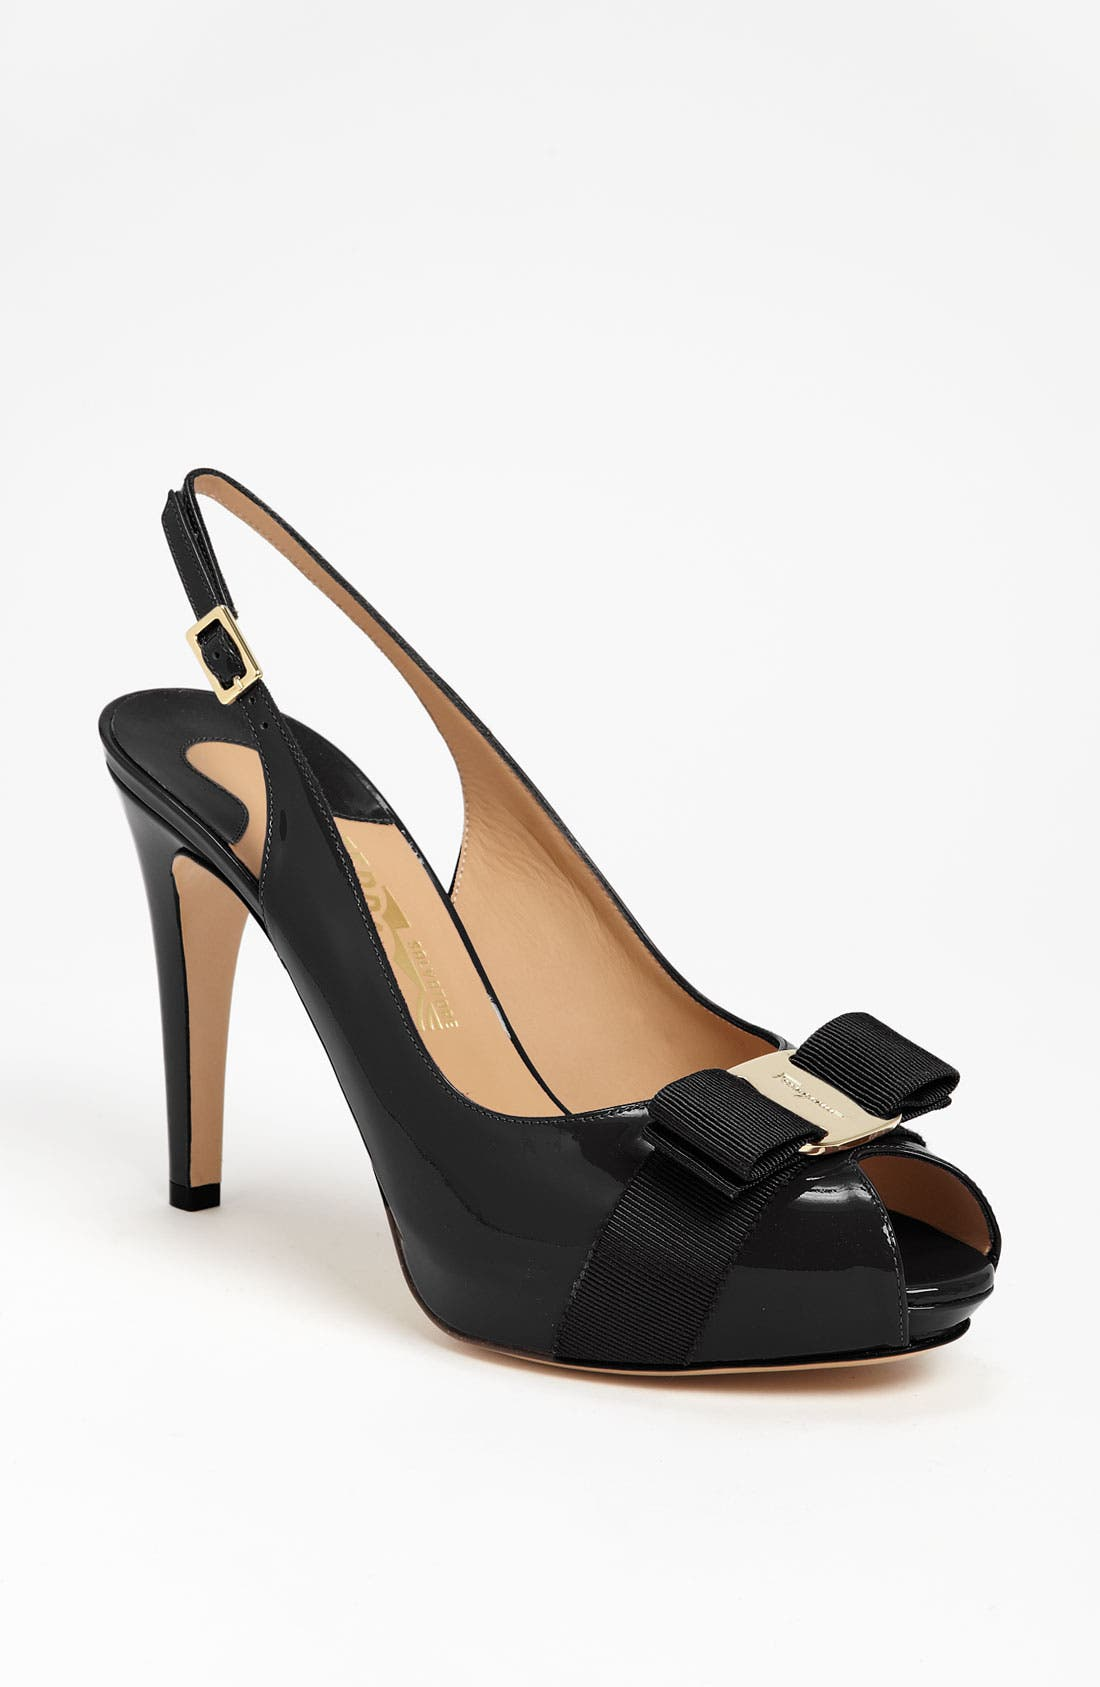 Main Image - Salvatore Ferragamo 'Tea' Pump